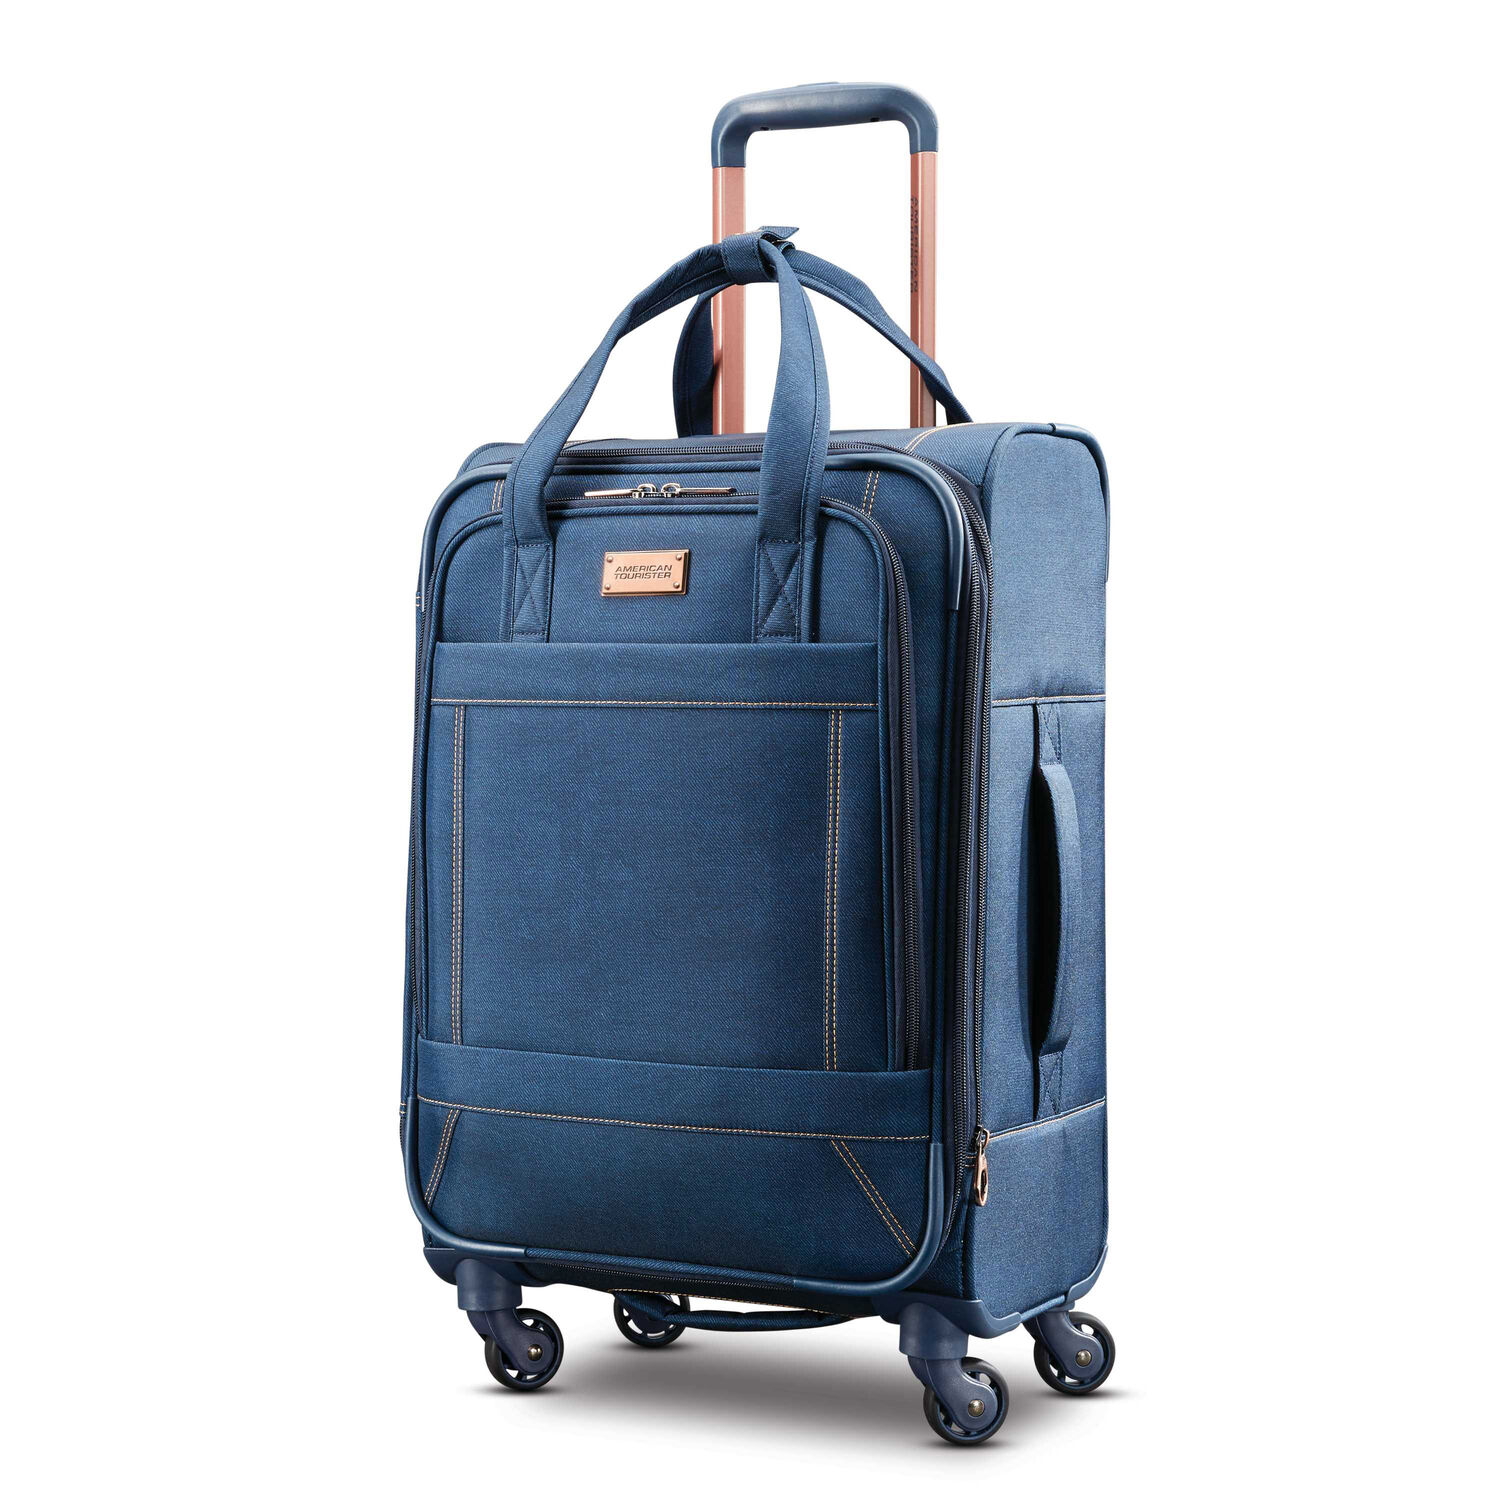 Carry On Luggage | American Tourister